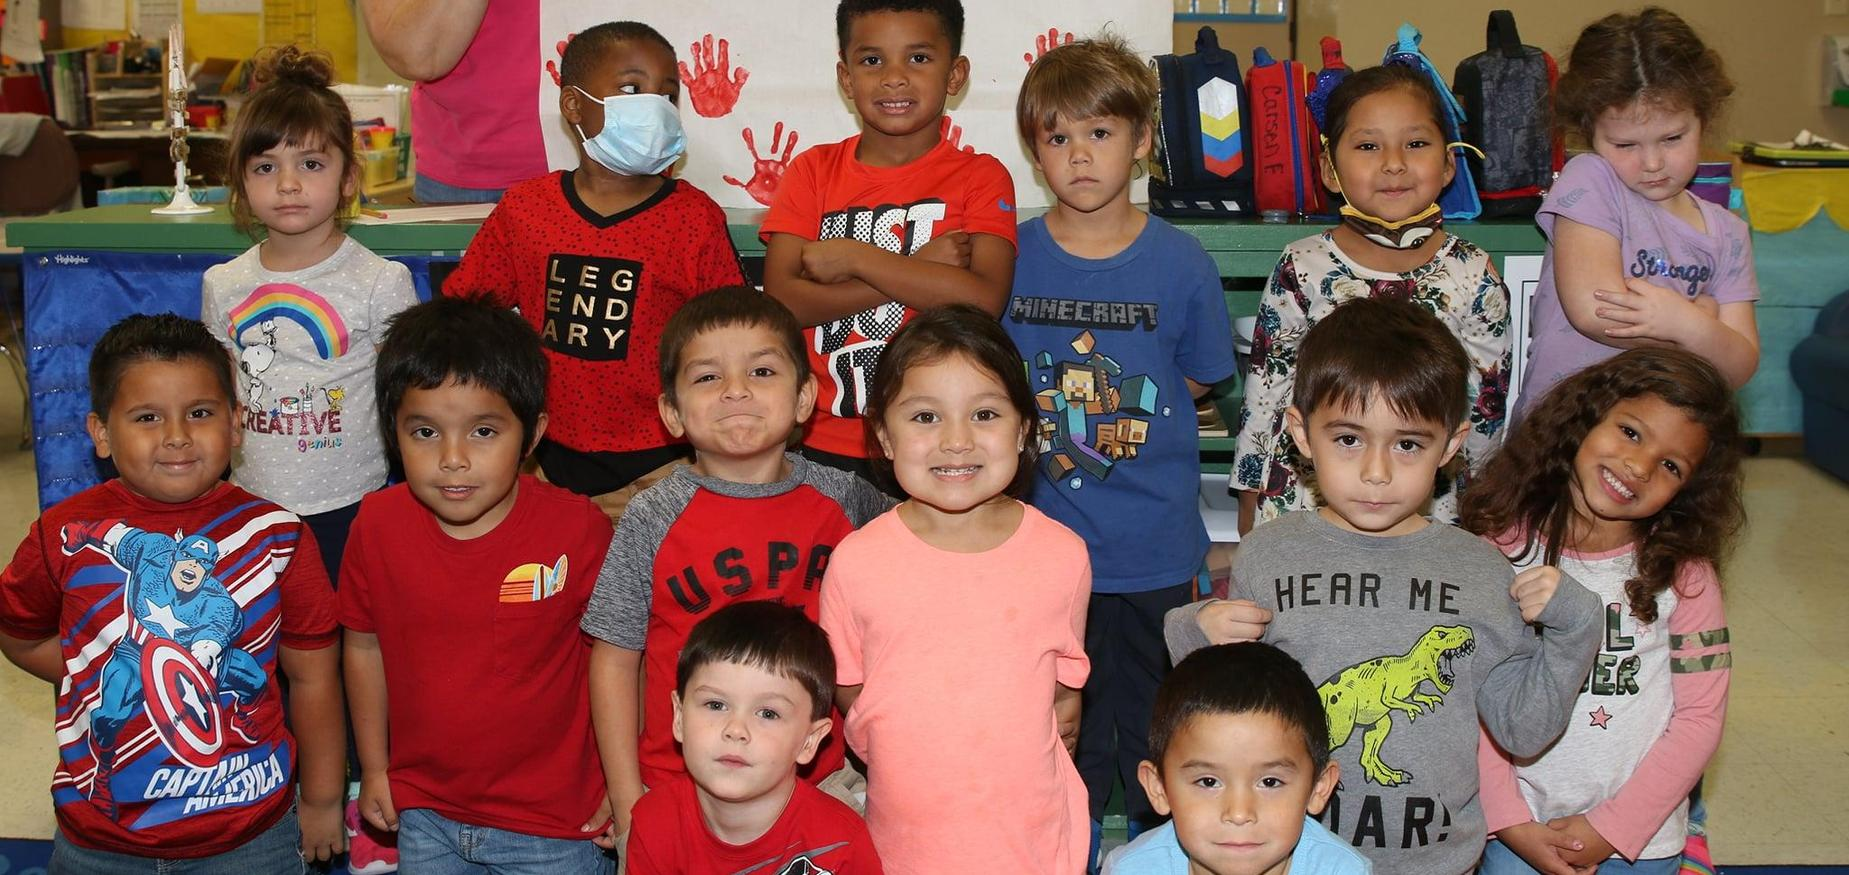 PreK students smile for group photo.